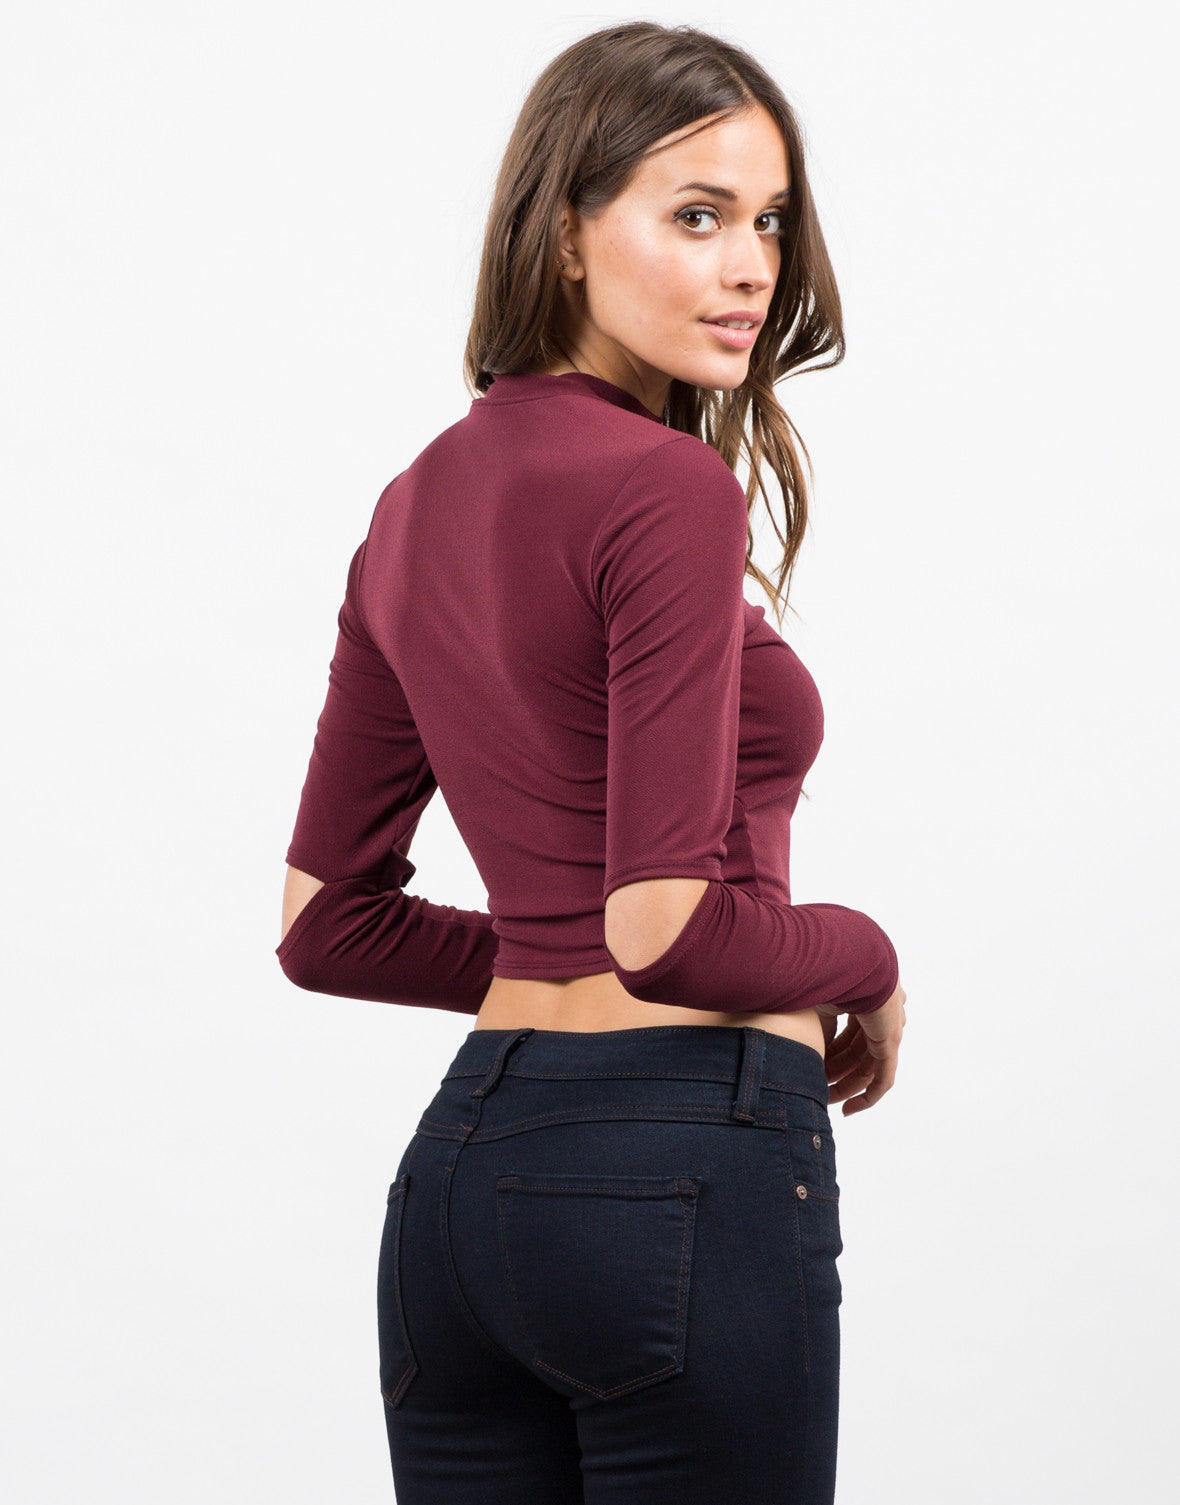 Back View of Elbow Slit Crop Top